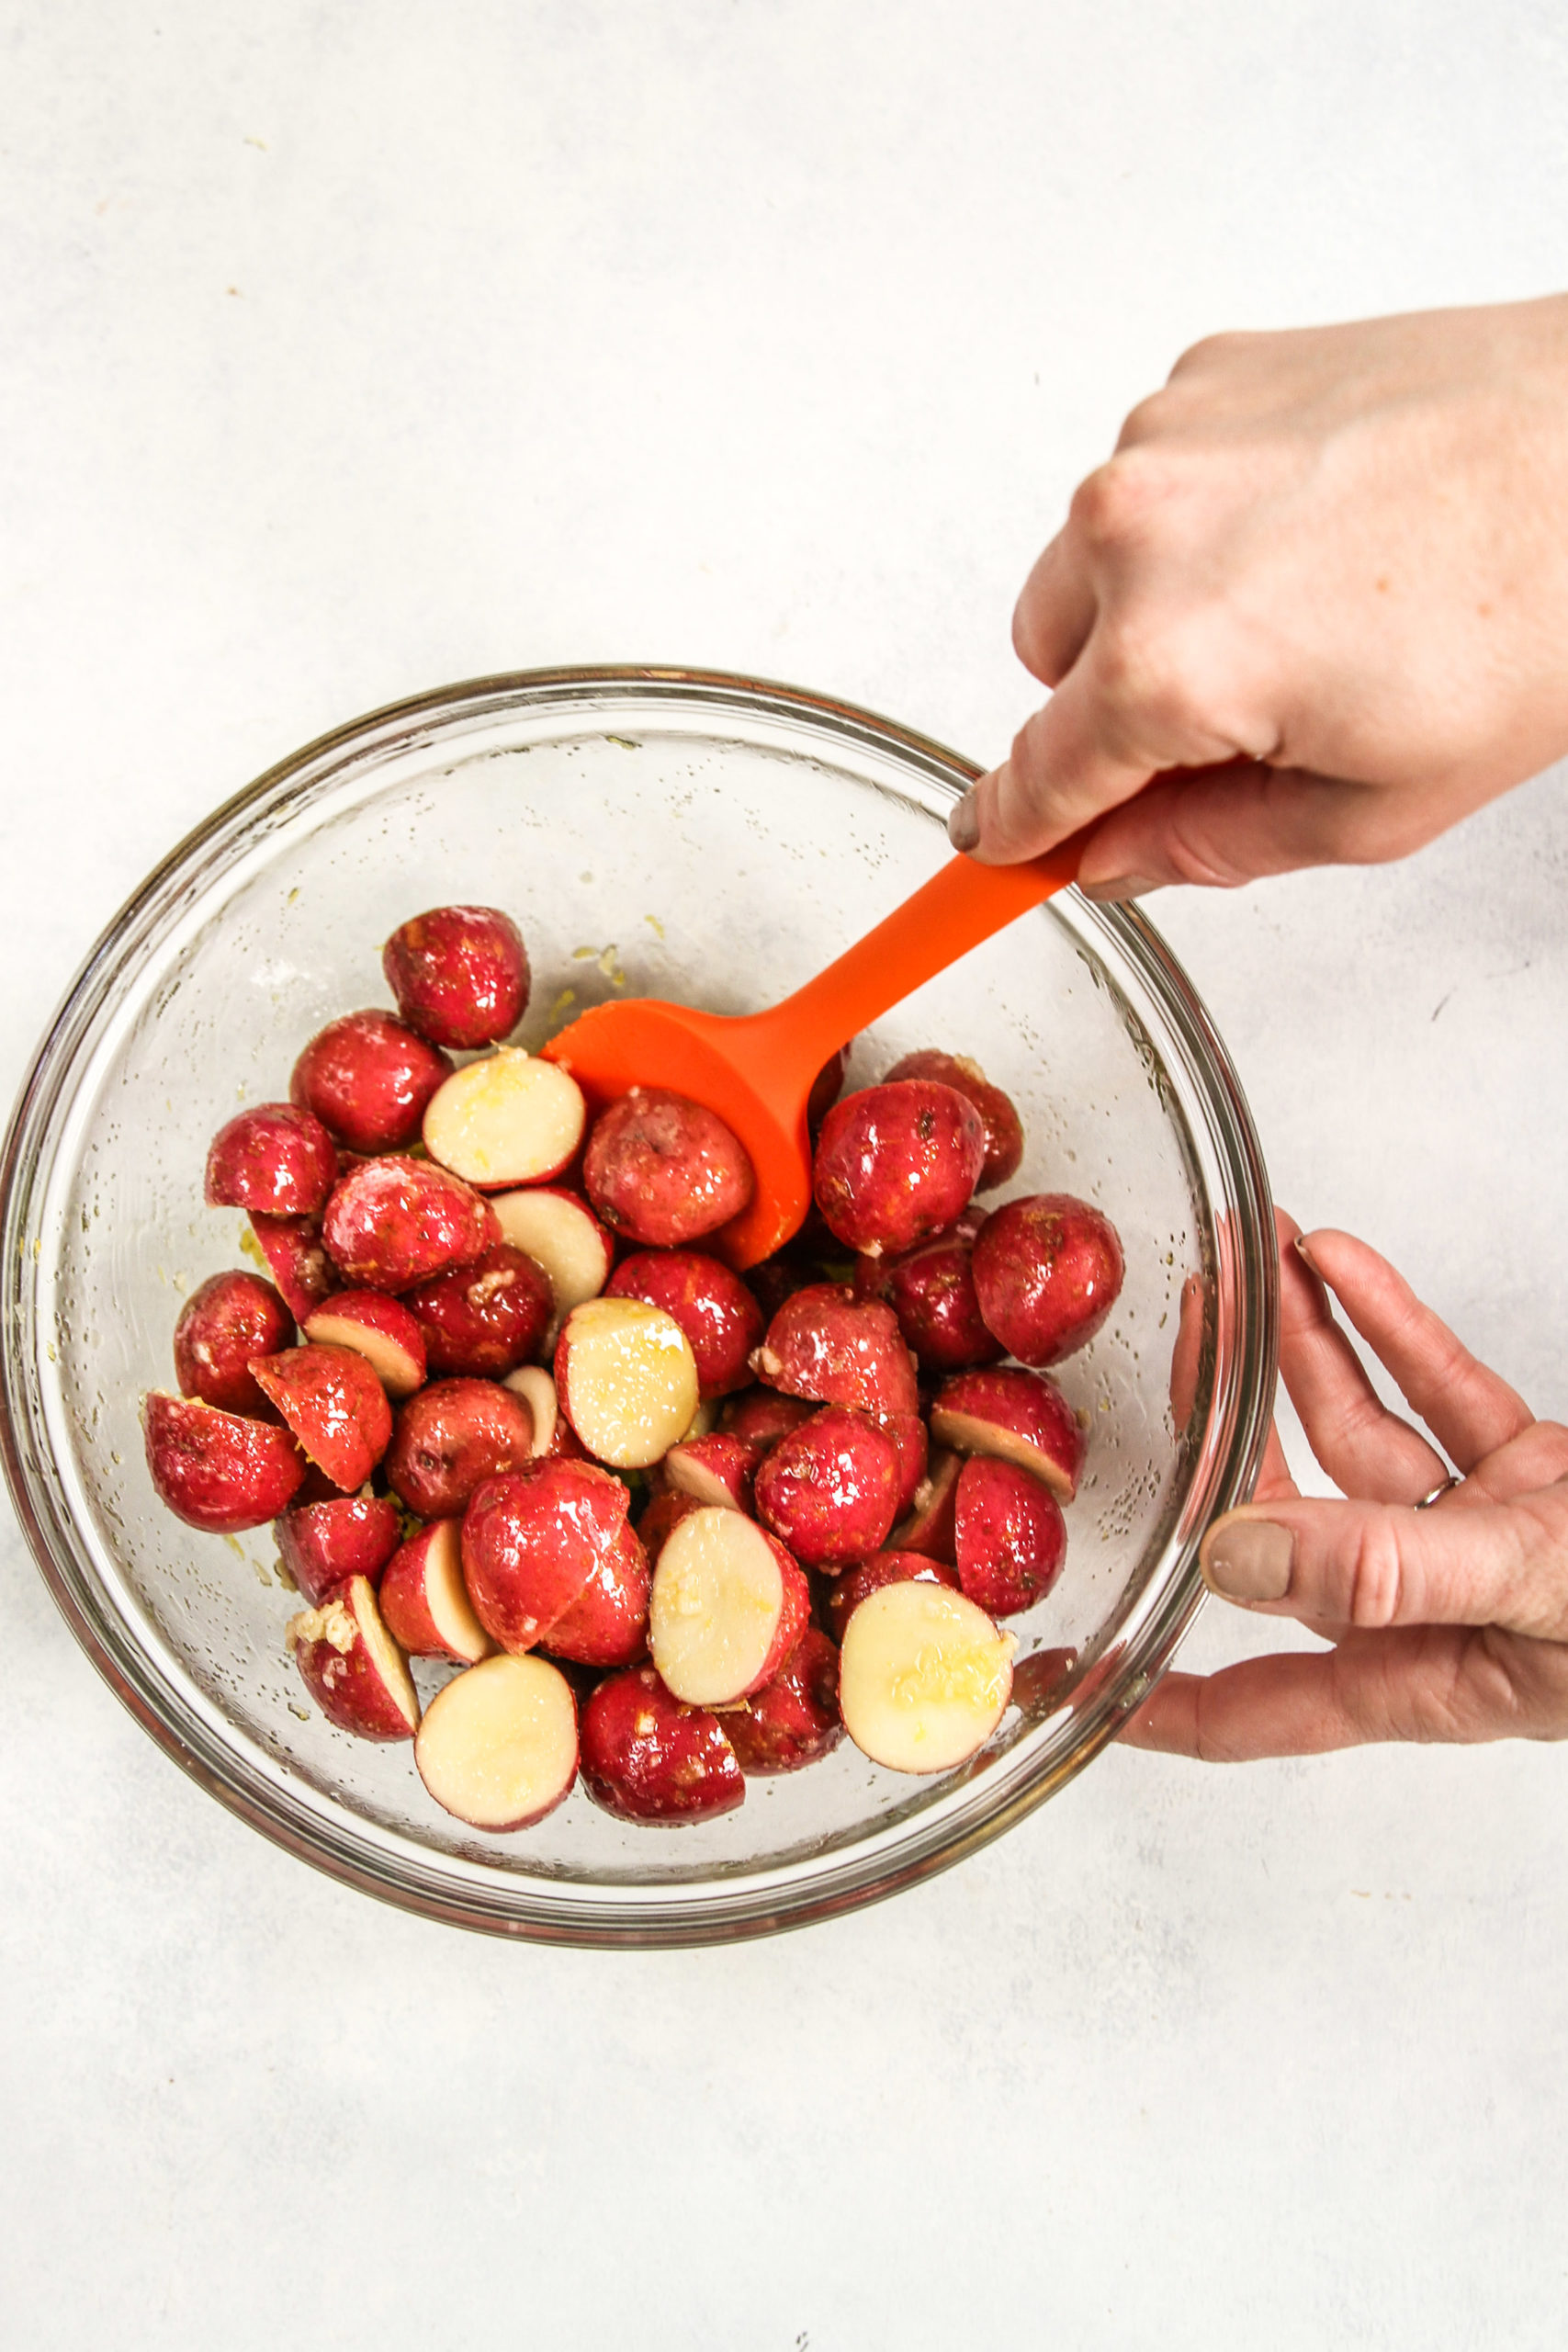 Baby red potatoes in a glass mixing bowl